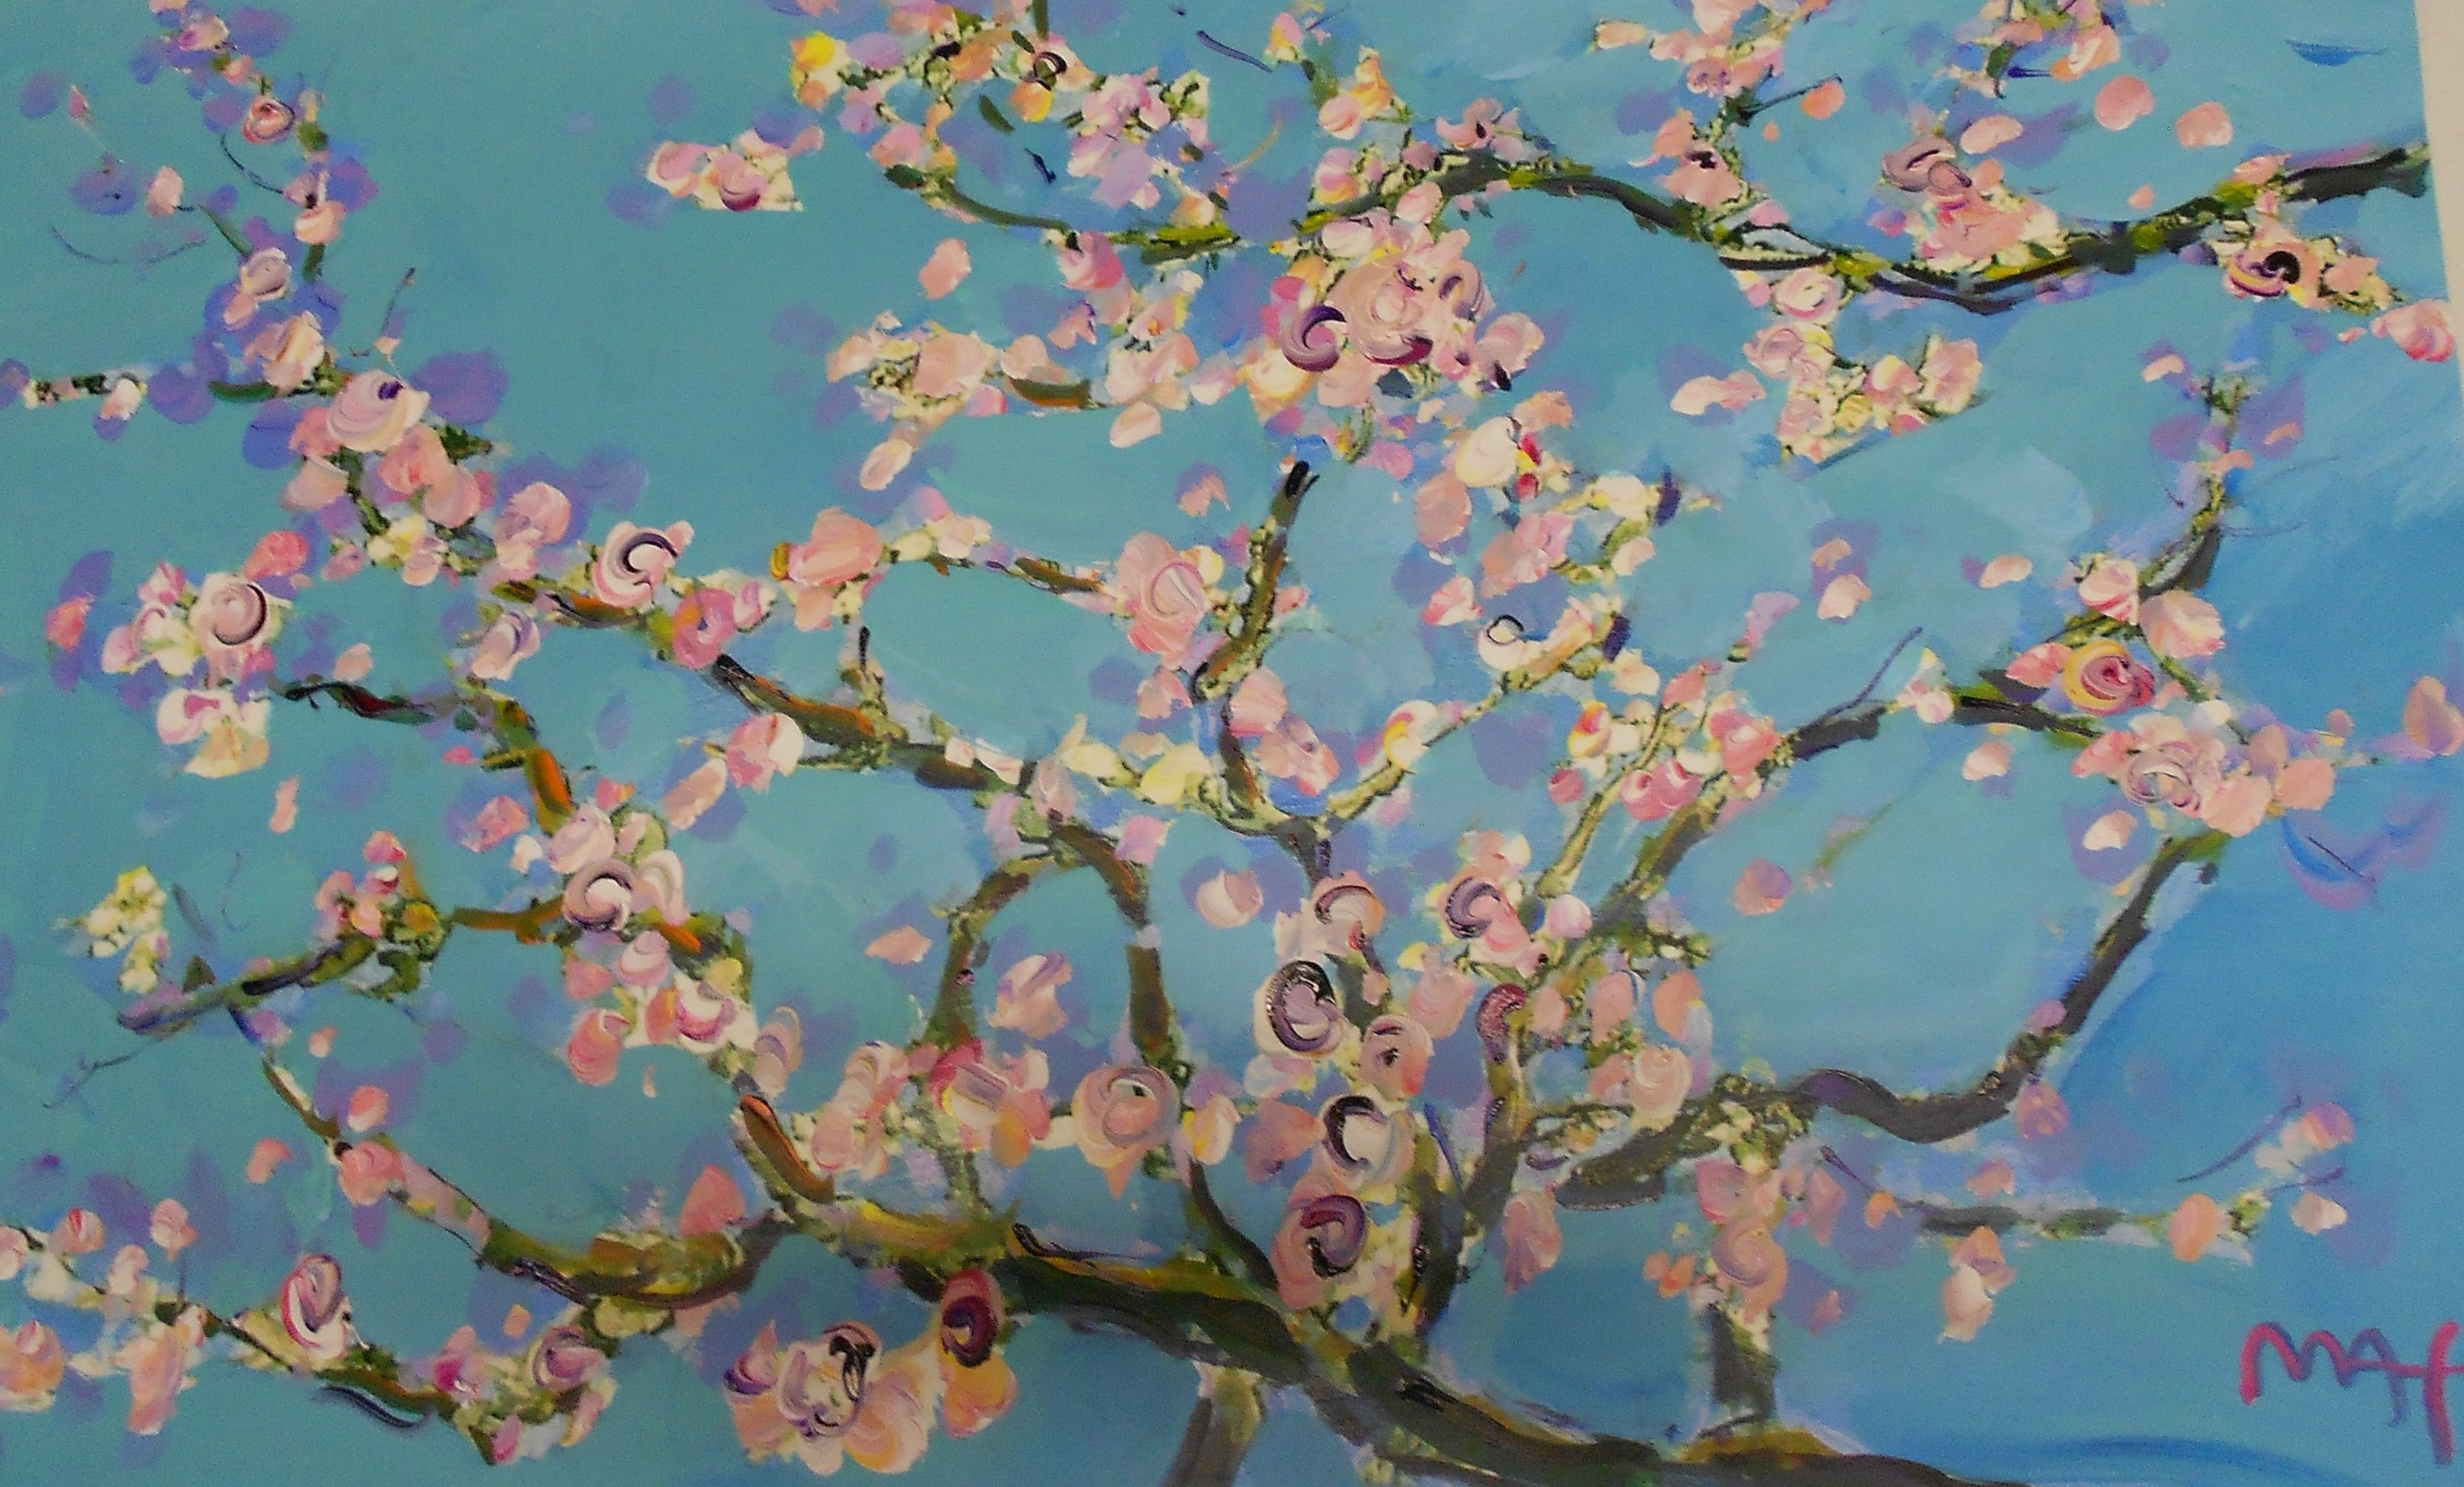 HOMAGE TO VAN GOGH:ALMOND BLOSSOM